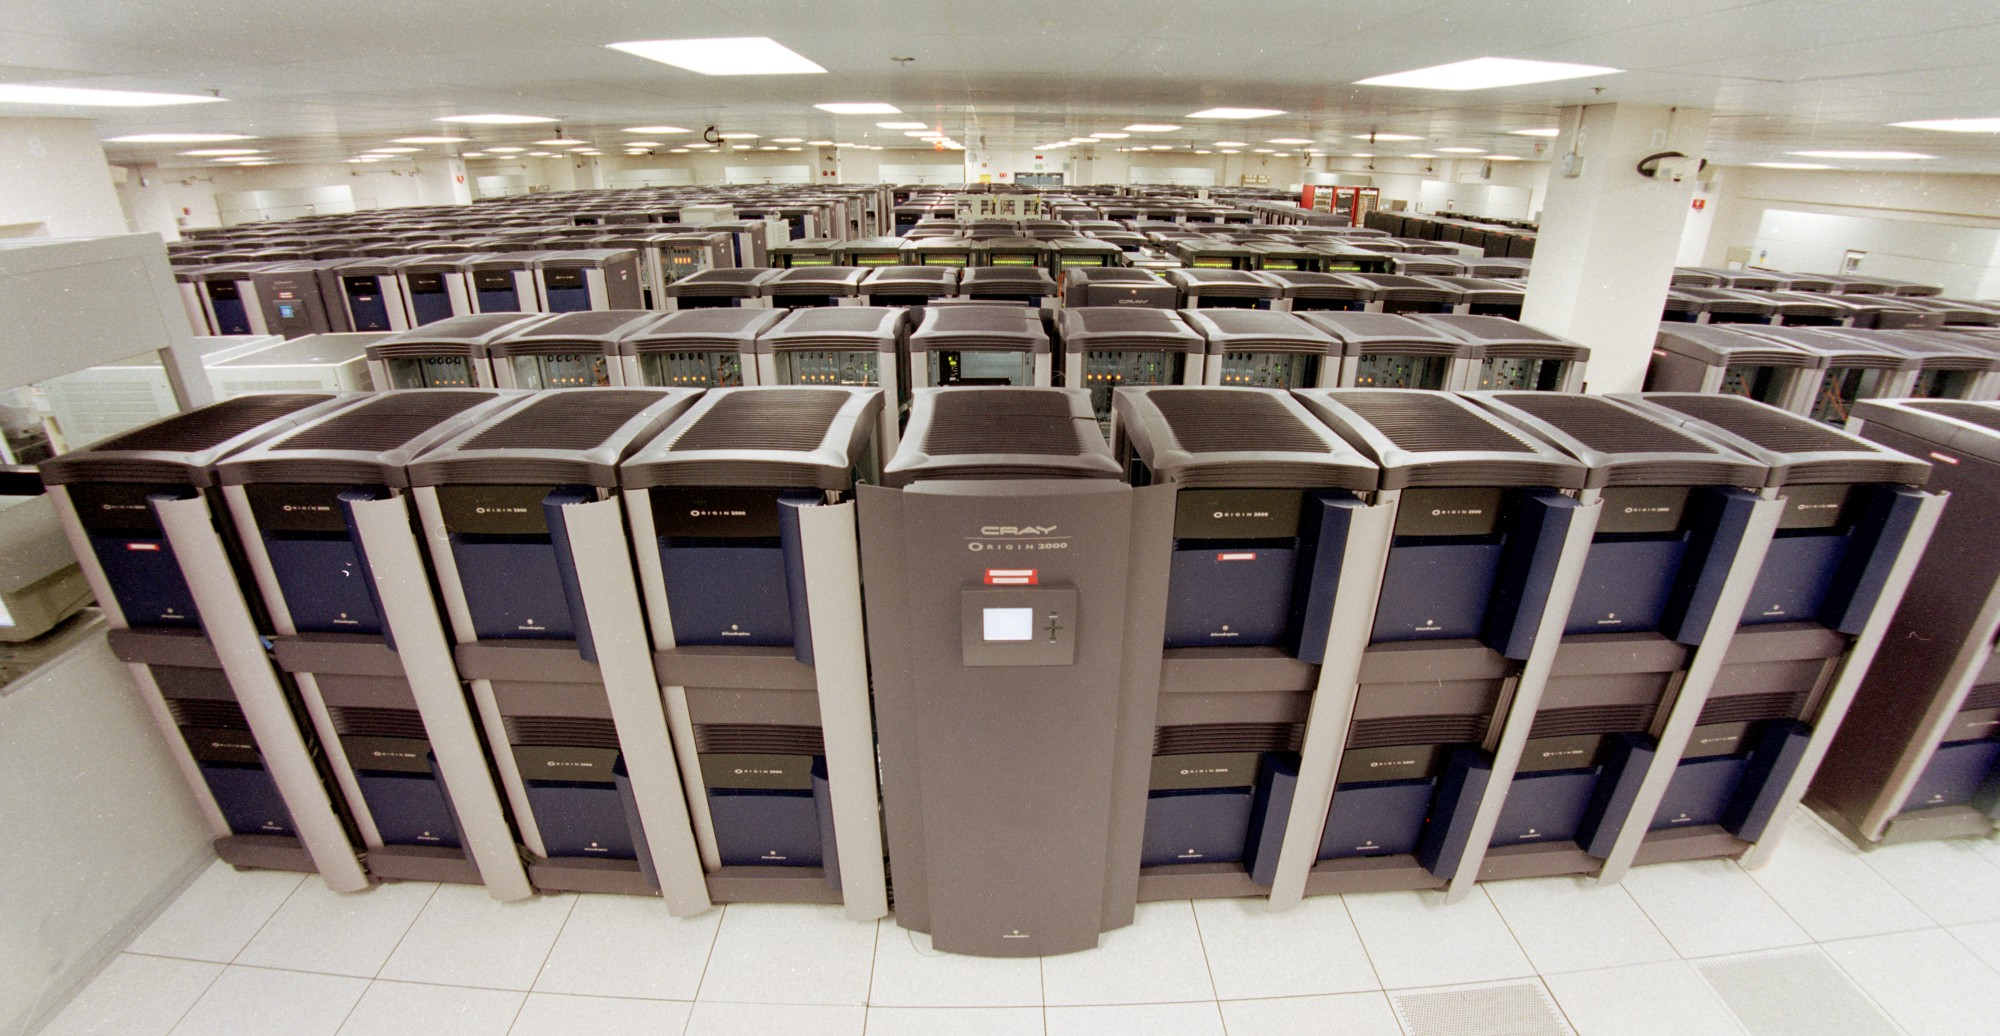 Why should I believe your supercomputing research?